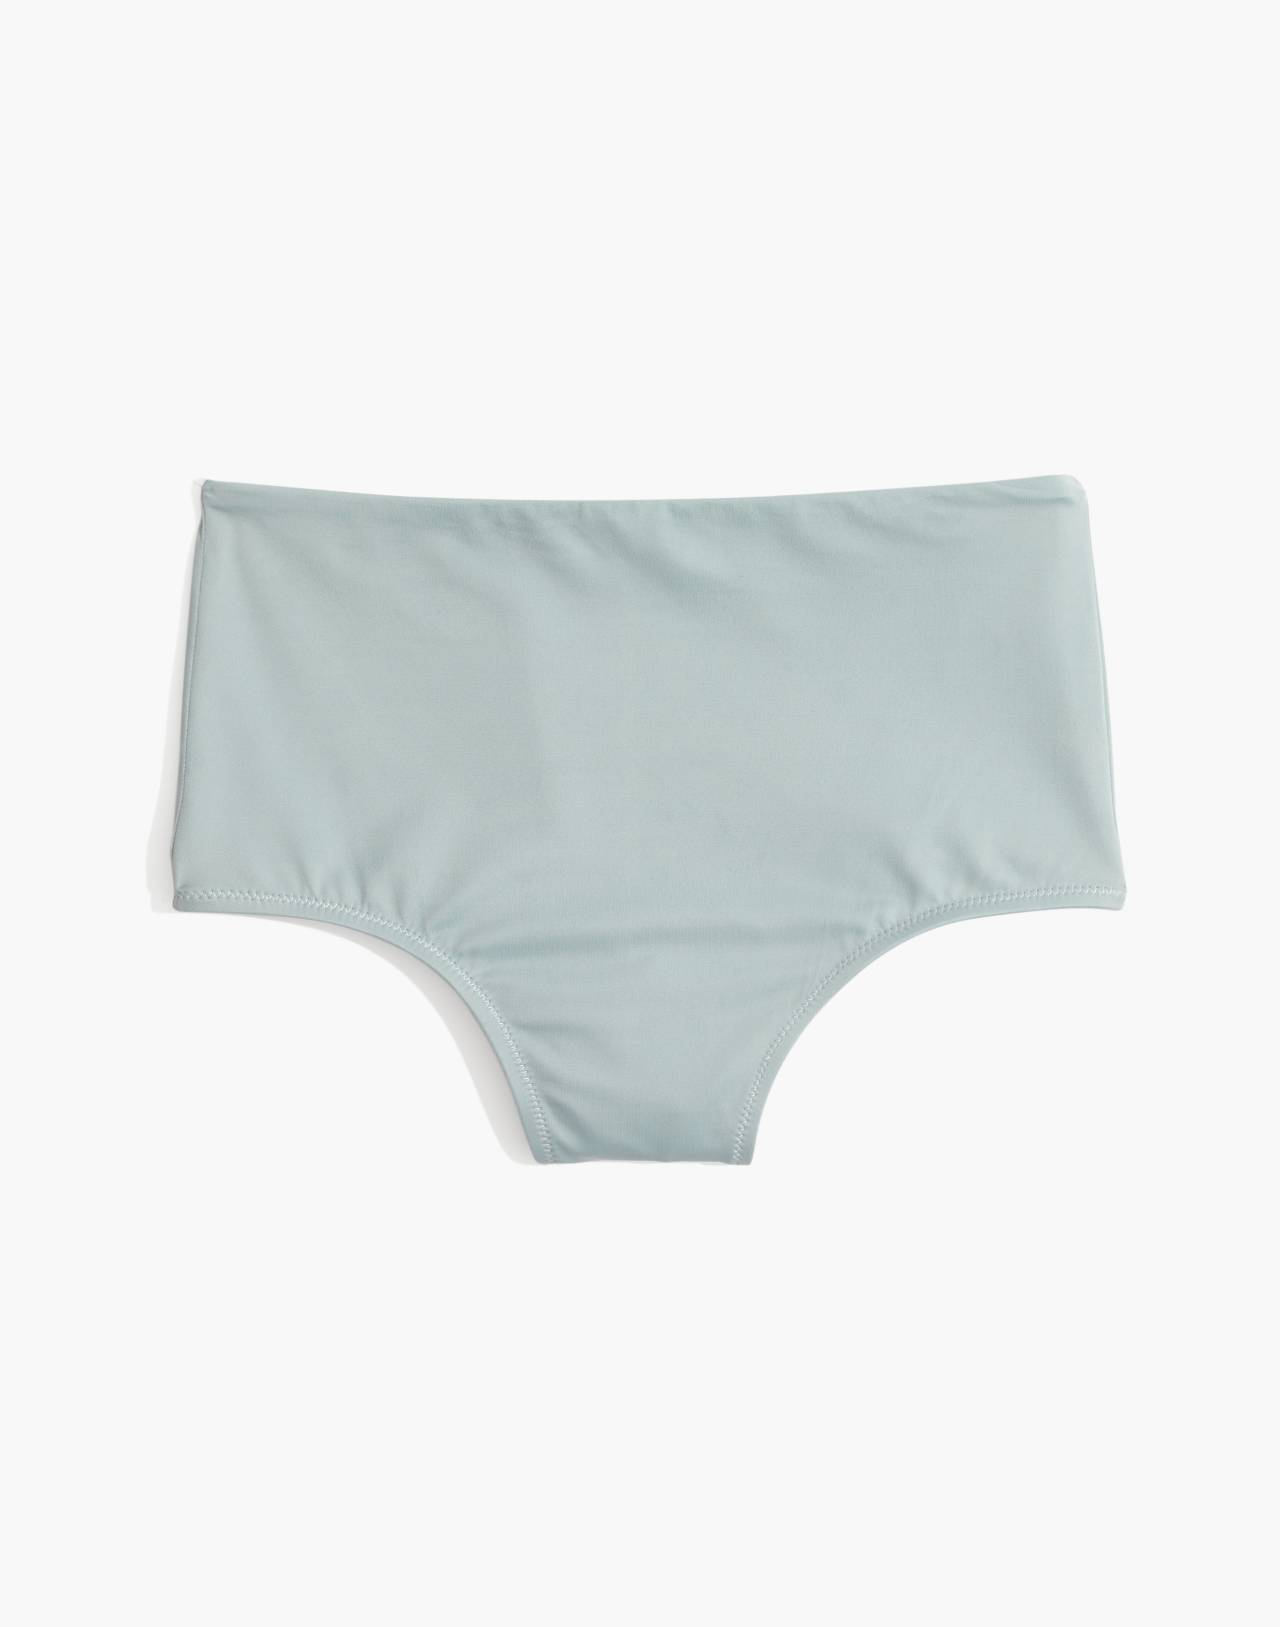 Madewell Second Wave Retro High-Waisted Bikini Bottom in blue horizon image 4